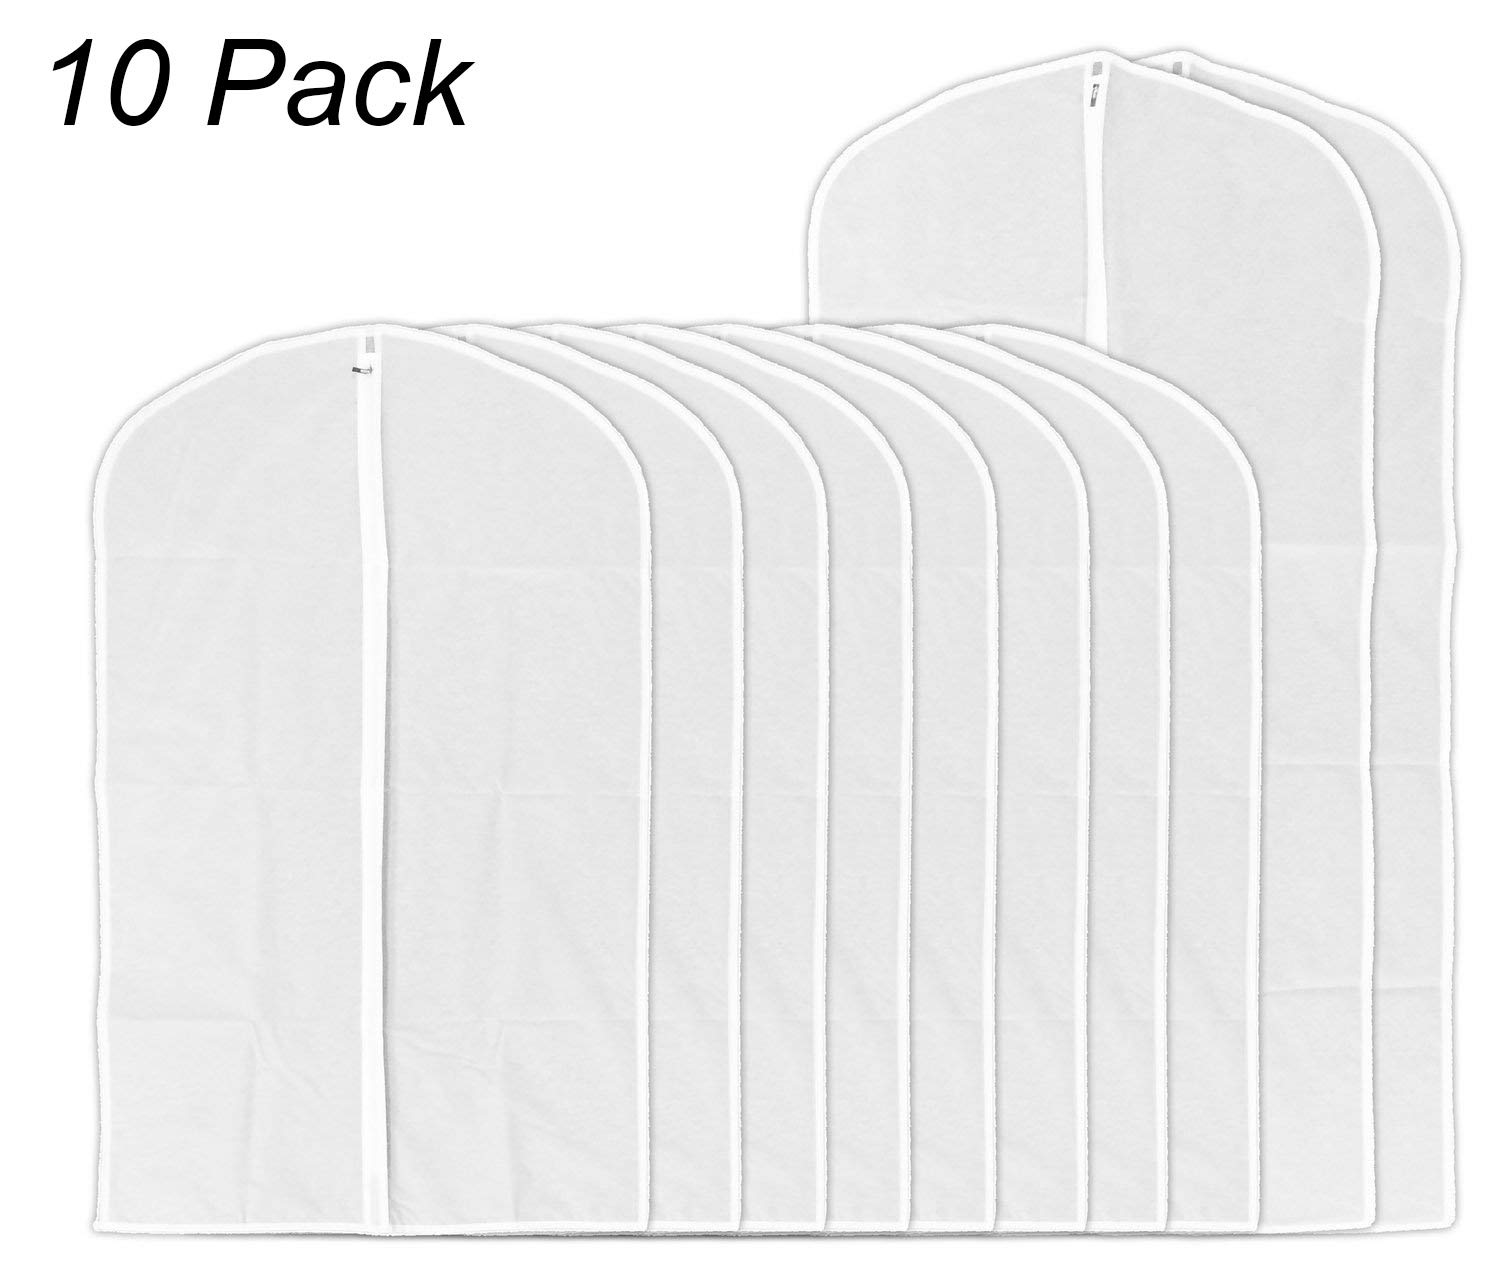 AOFUL Garment Cover Bag, Translucent PEVA Clothes Covers Dustproof Organizer Storage Protector Pack of 10 (8 Medium + 2 Large)